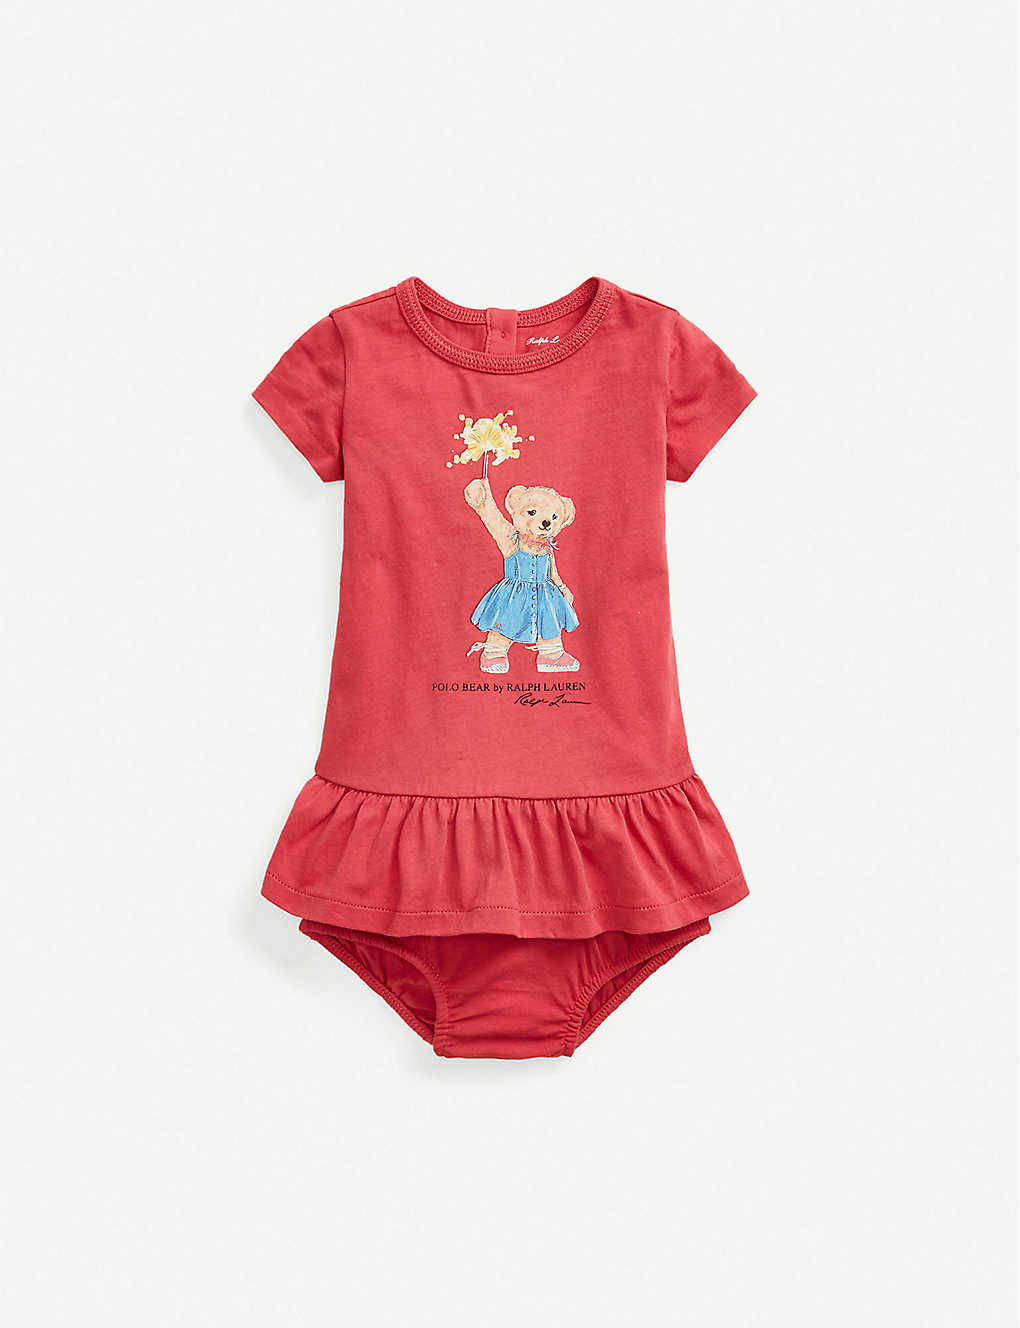 RALPH LAUREN: Bear-print cotton dress and bloomers set 3-24 months